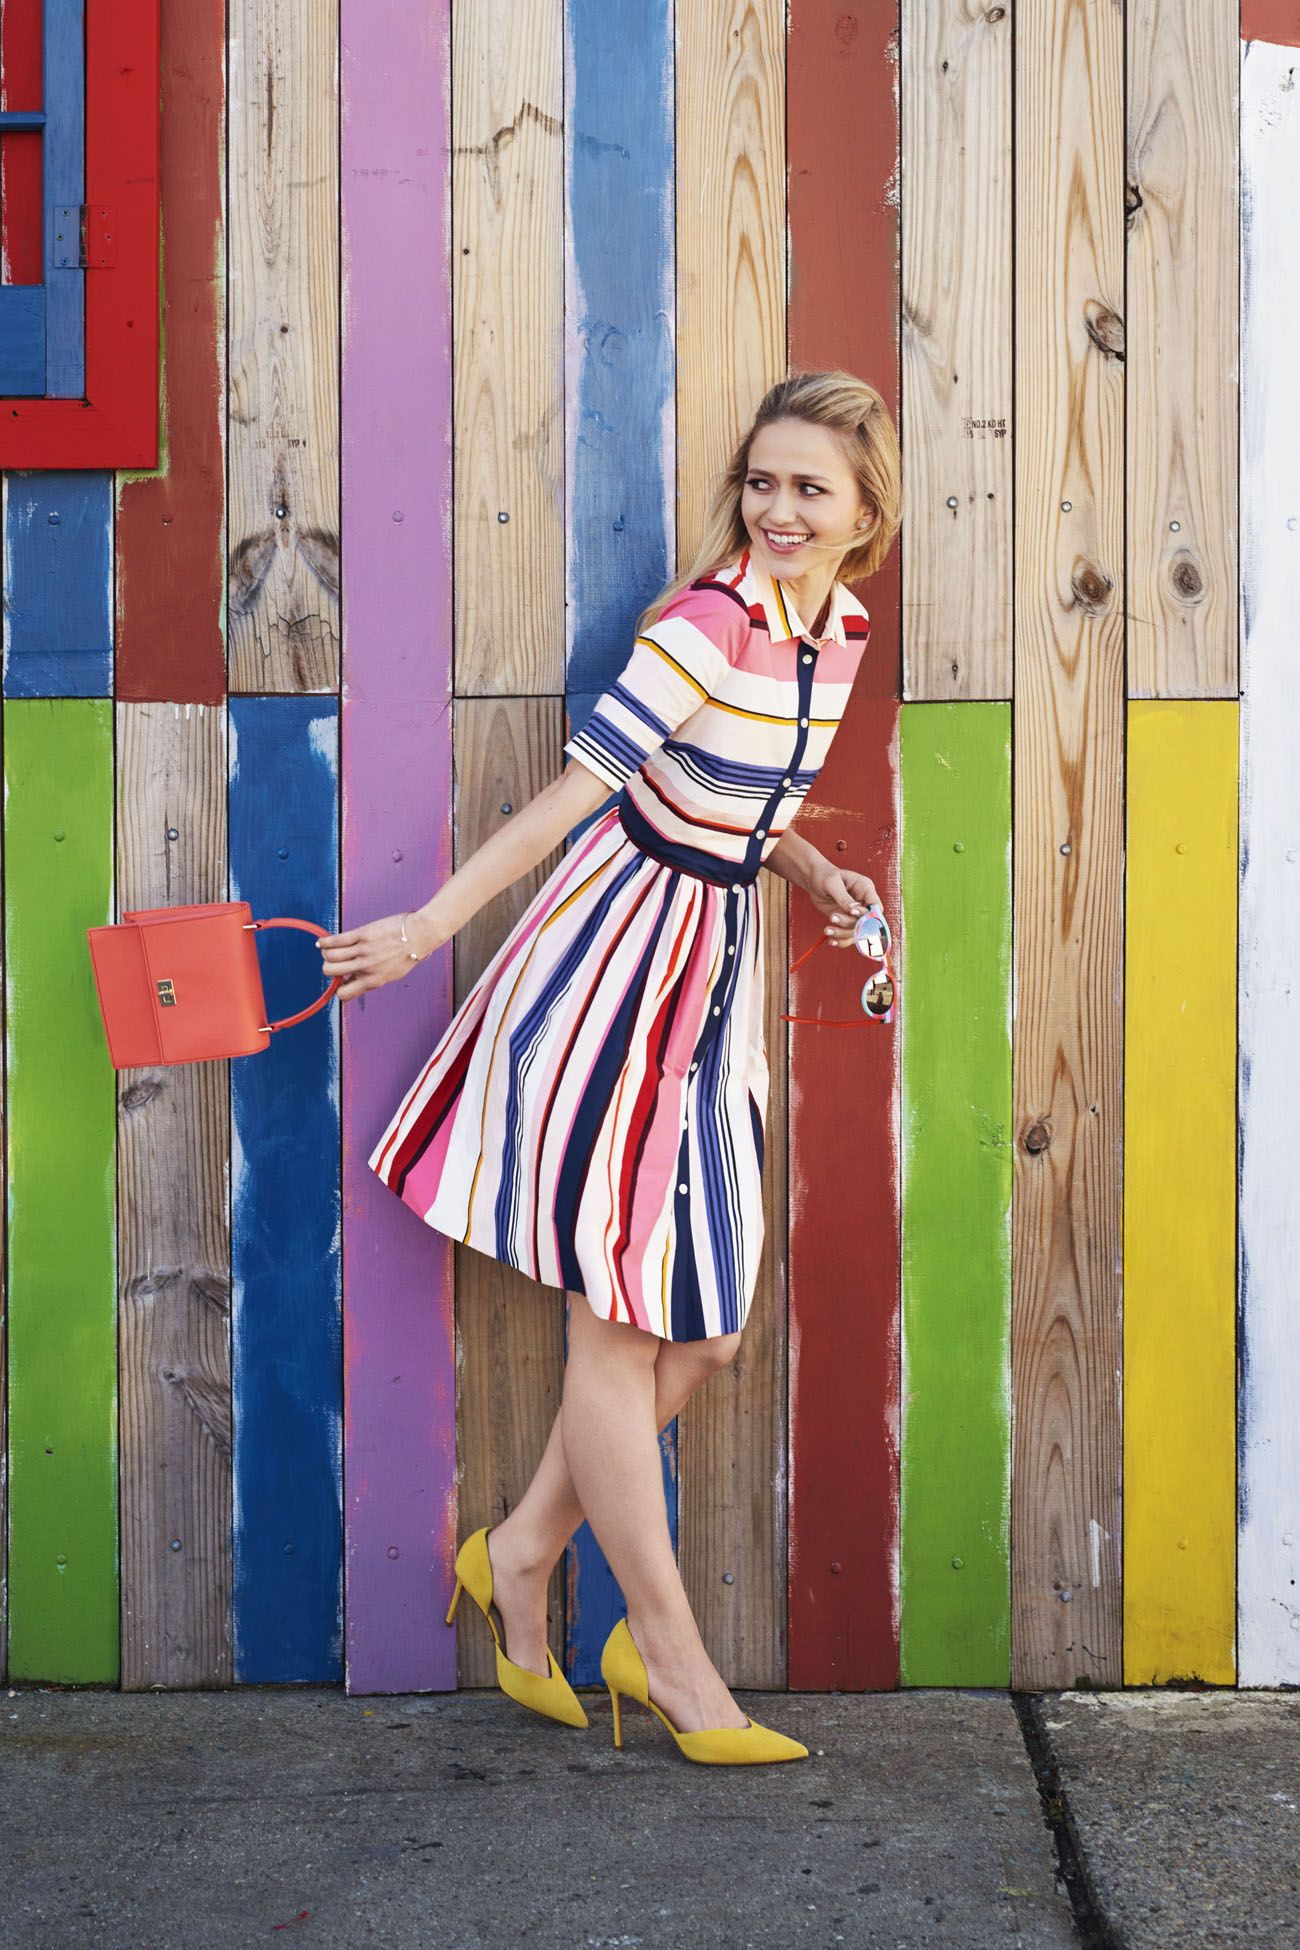 """<p>Prettier than pinstripes and a bit sassier, it's the preppy way to ring in spring.</p><p><em data-redactor-tag=""""em"""" data-verified=""""redactor""""><strong data-redactor-tag=""""strong"""" data-verified=""""redactor"""">Dress,</strong> $398, <a href=""""http://katespade.com"""" target=""""_blank"""" data-tracking-id=""""recirc-text-link"""">katespade.com</a>. <strong data-redactor-tag=""""strong"""" data-verified=""""redactor"""">Earrings,</strong> $22, <a href=""""http://spartina449.com"""" target=""""_blank"""" data-tracking-id=""""recirc-text-link"""">spartina449.com</a>. <strong data-redactor-tag=""""strong"""" data-verified=""""redactor"""">Sunglasses,</strong> $95, <a href=""""http://shop.swatch.com"""" target=""""_blank"""" data-tracking-id=""""recirc-text-link"""">shop.swatch.com</a>. <strong data-redactor-tag=""""strong"""" data-verified=""""redactor"""">Bracelet,</strong> $36, <a href=""""http://admkjewelry.com"""" target=""""_blank"""" data-tracking-id=""""recirc-text-link"""">admkjewelry.com</a>. <strong data-redactor-tag=""""strong"""" data-verified=""""redactor"""">Purse,</strong> $148, <a href=""""http://neelyandchloe.com"""" target=""""_blank"""" data-tracking-id=""""recirc-text-link"""">neelyandchloe.com</a>. <strong data-redactor-tag=""""strong"""" data-verified=""""redactor"""">Heels,</strong> $160, <a href=""""http://marcfisherfootwear.com"""" target=""""_blank"""" data-tracking-id=""""recirc-text-link"""">marcfisherfootwear.com</a>.</em></p><p><strong data-redactor-tag=""""strong"""" data-verified=""""redactor"""">TRAVEL TIP:</strong> Take in authentic Spanish cuisine and colorful&nbsp&#x3B;decor at Long Island City local favorite <a href=""""http://www.lachozadelgordo.com/"""" target=""""_blank"""" data-tracking-id=""""recirc-text-link"""">La Choza del Gordo</a>.</p>"""